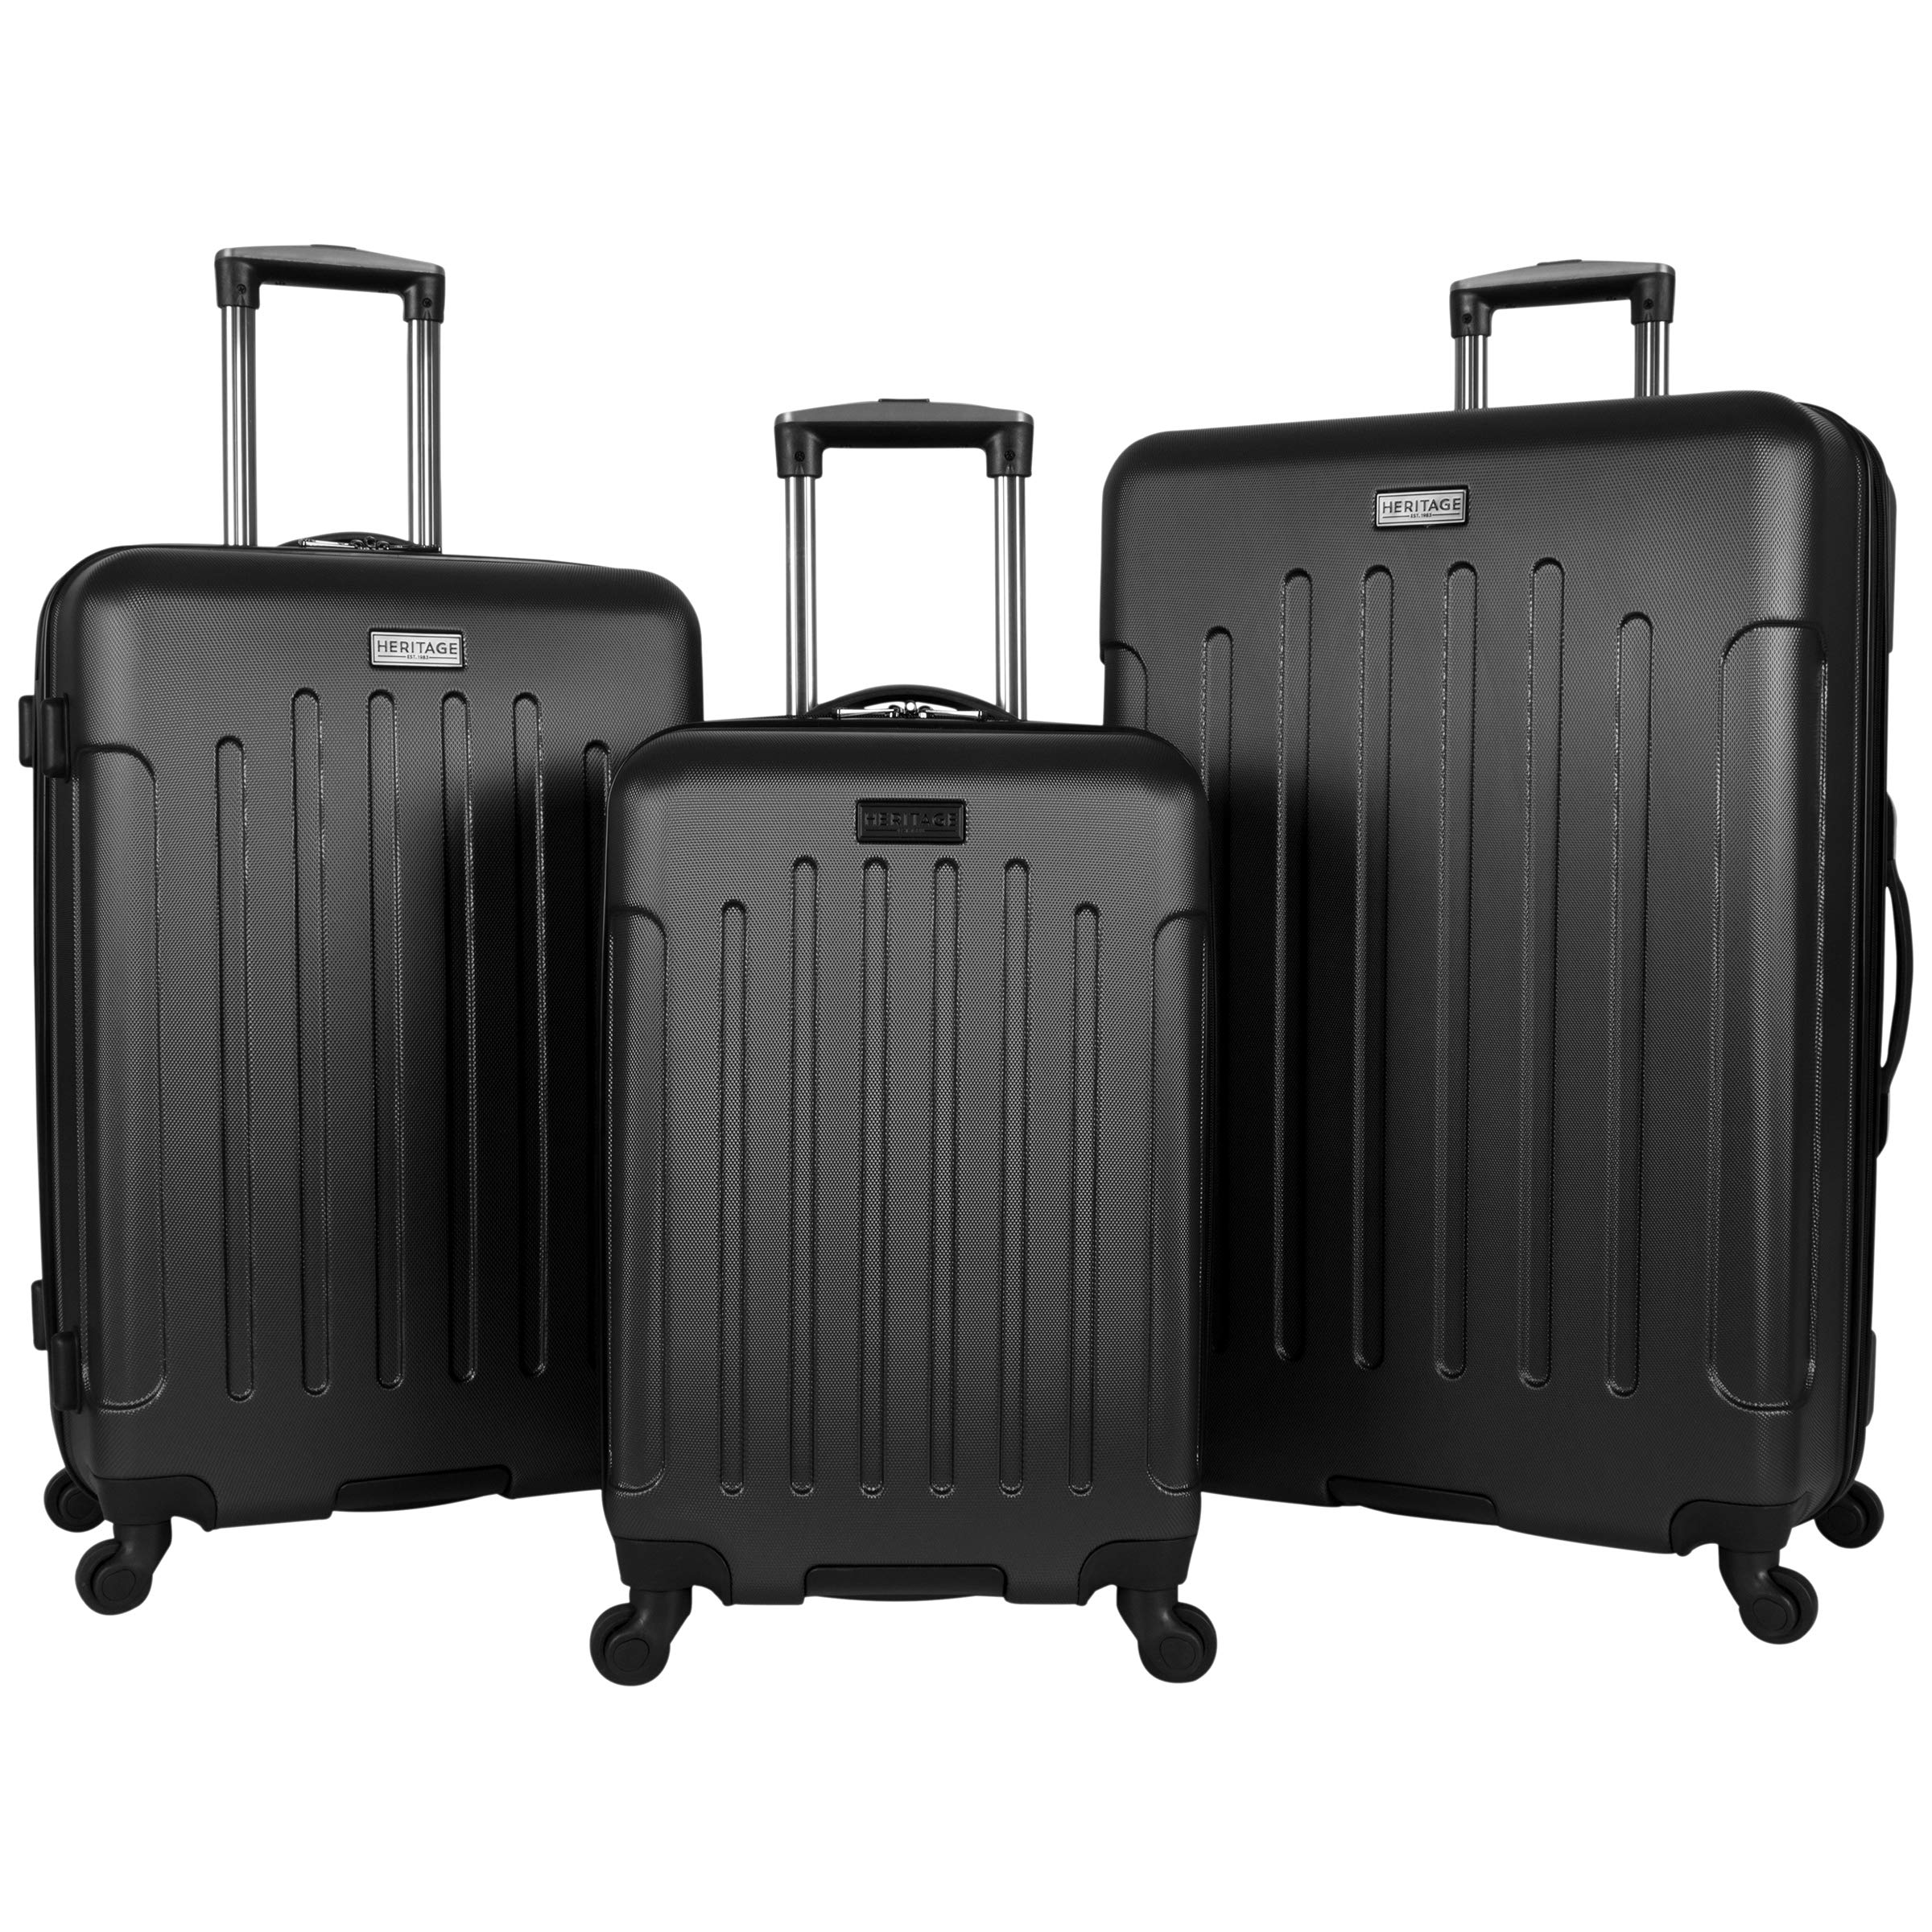 Heritage Travelware Lincoln Park Hardside 4-Wheel Spinner 3-Piece Luggage Set; 20'' Carry-on, 24'', 28'', Black by Heritage Travelware